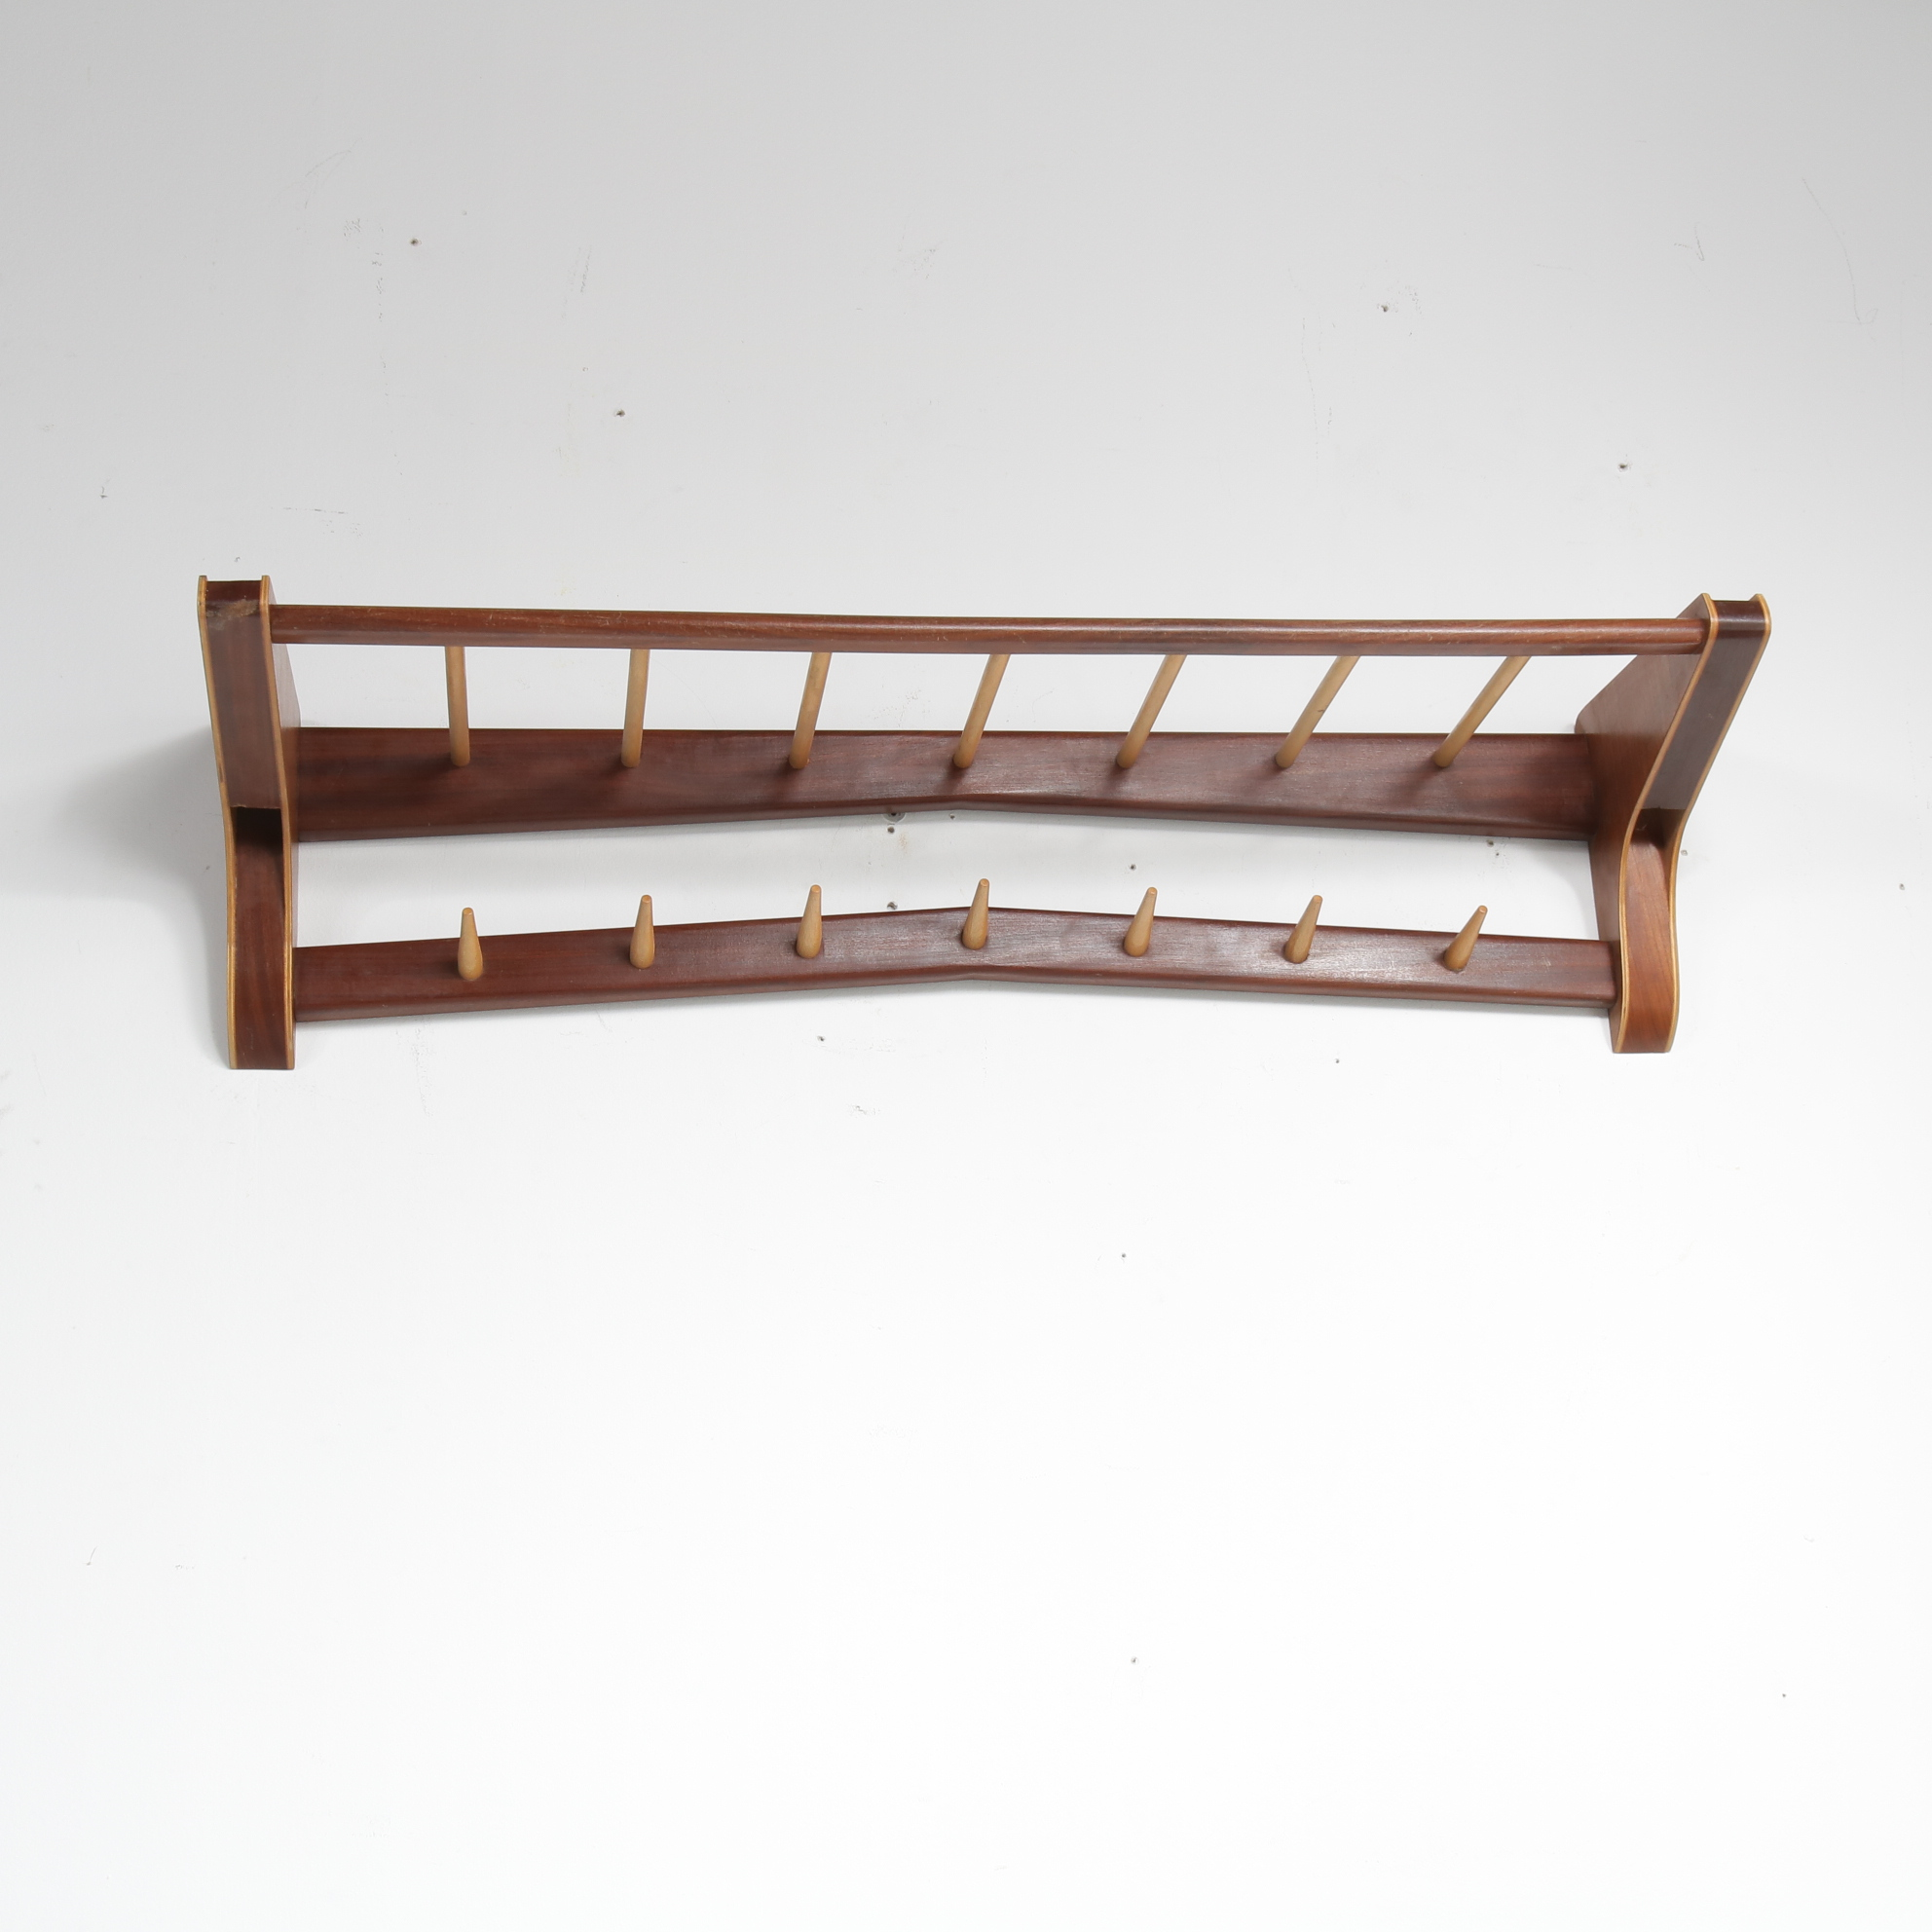 m23300 1950s Scandinavian style wall mounted teak with birch wooden coat rack